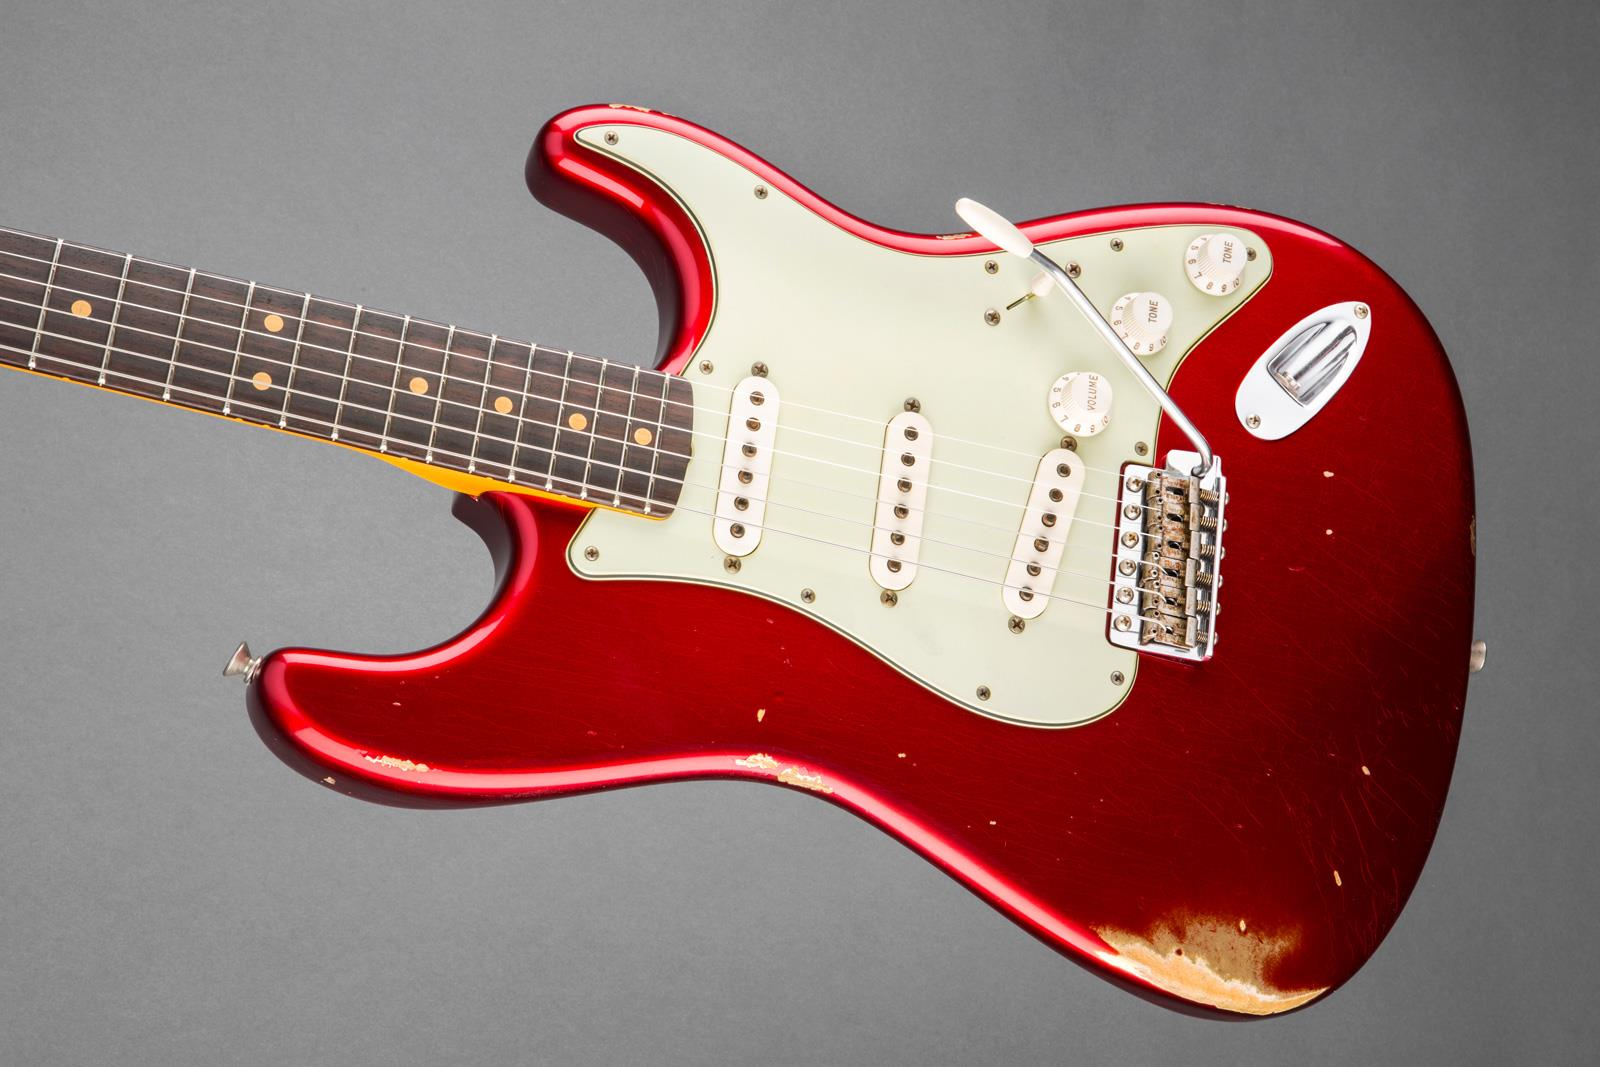 Fender Custom Shop 1963 Relic Stratocaster Candy Apple Red Electric Guitars